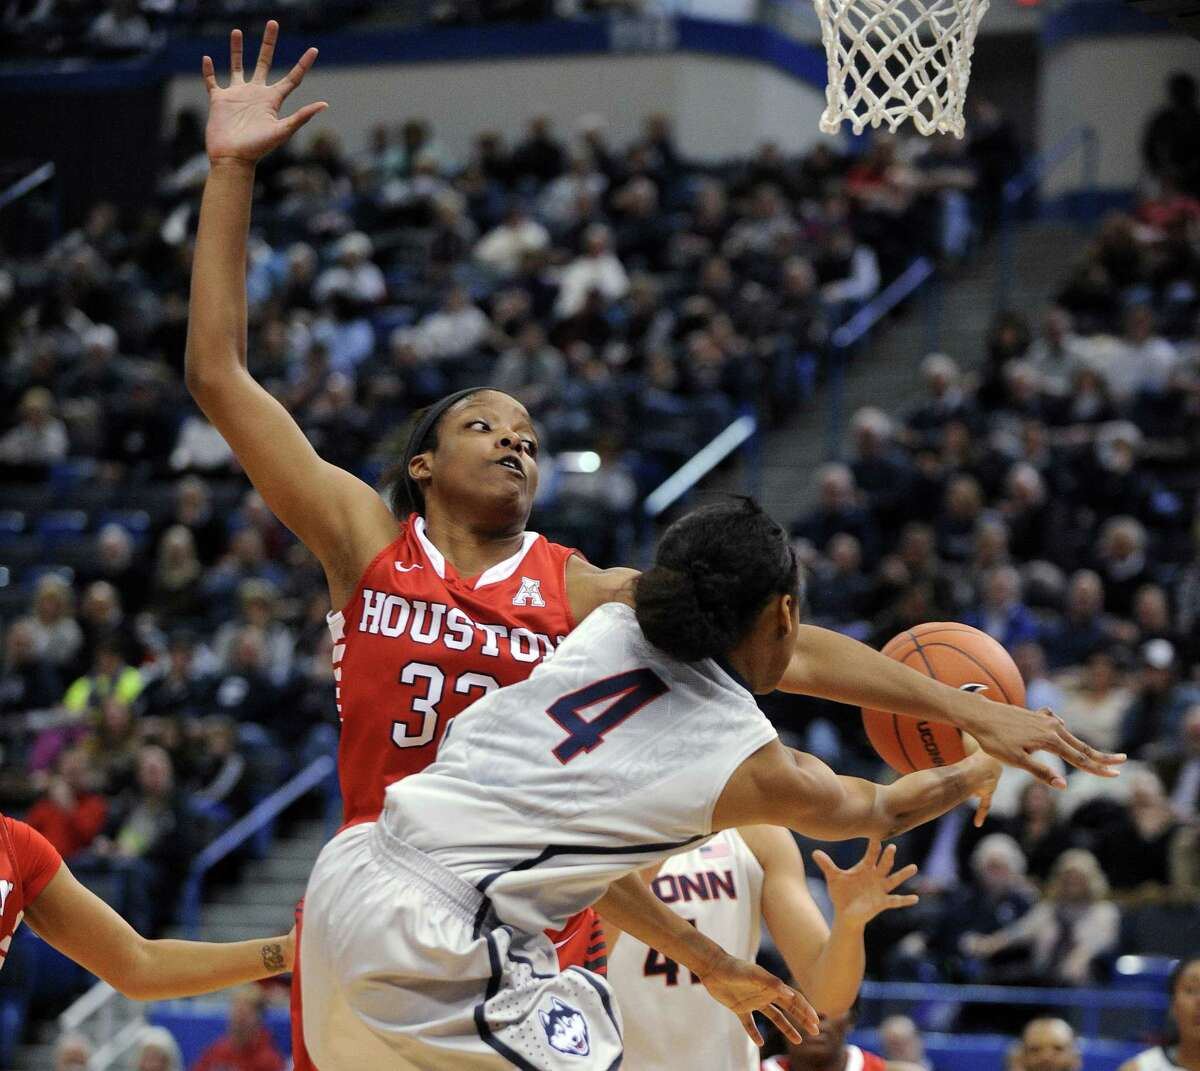 UConn point guard Moriah Jefferson passes around Houston's Tyler Gilbert during the first half of the Huskies' win on Tuesday night at the XL Center in Hartford.